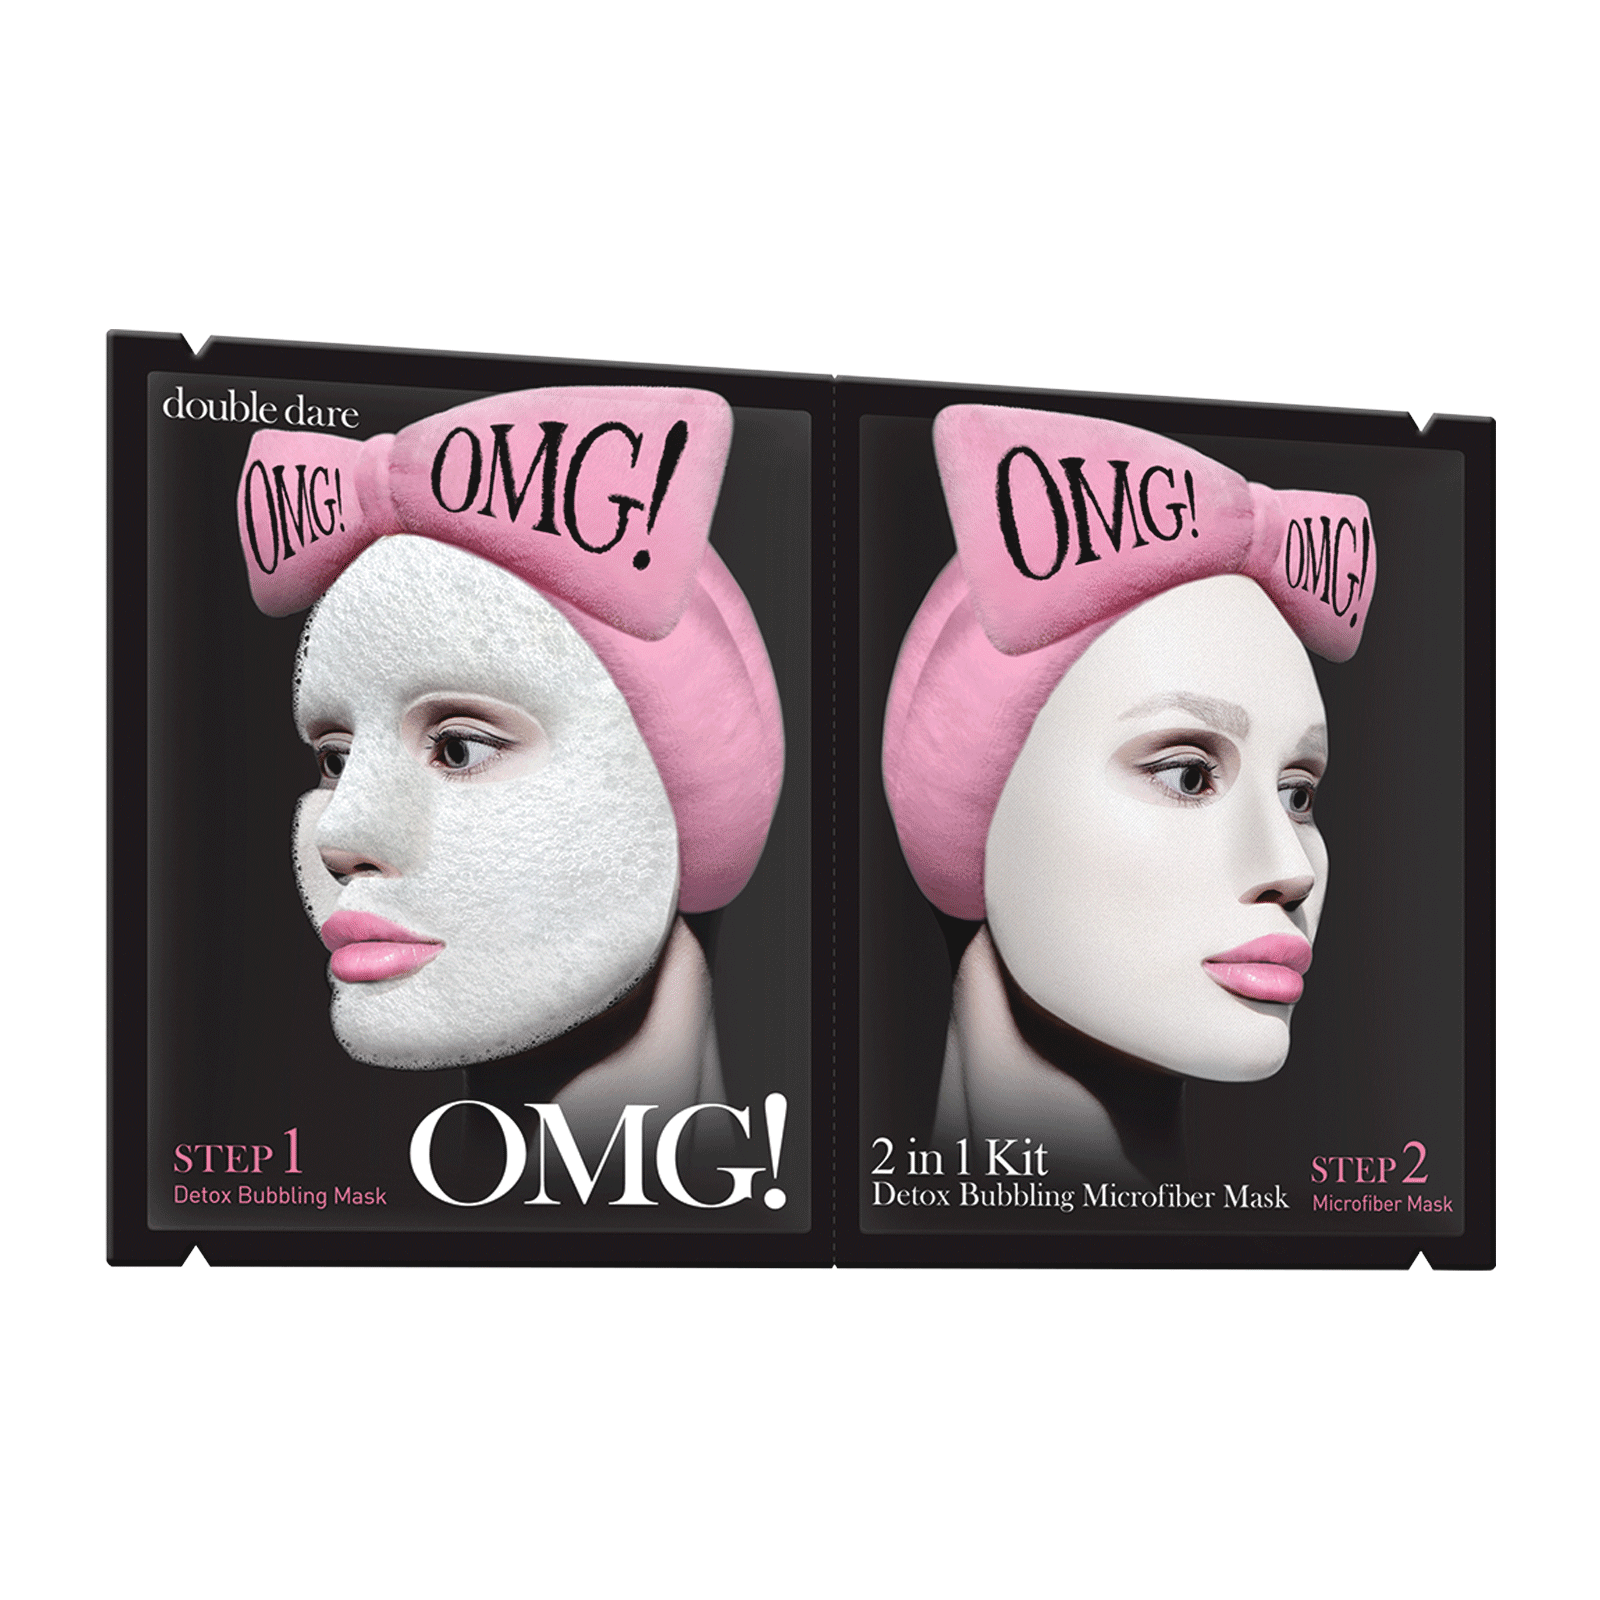 OMG! 2-in-1 Detox Bubbling Microfiber Face Mask